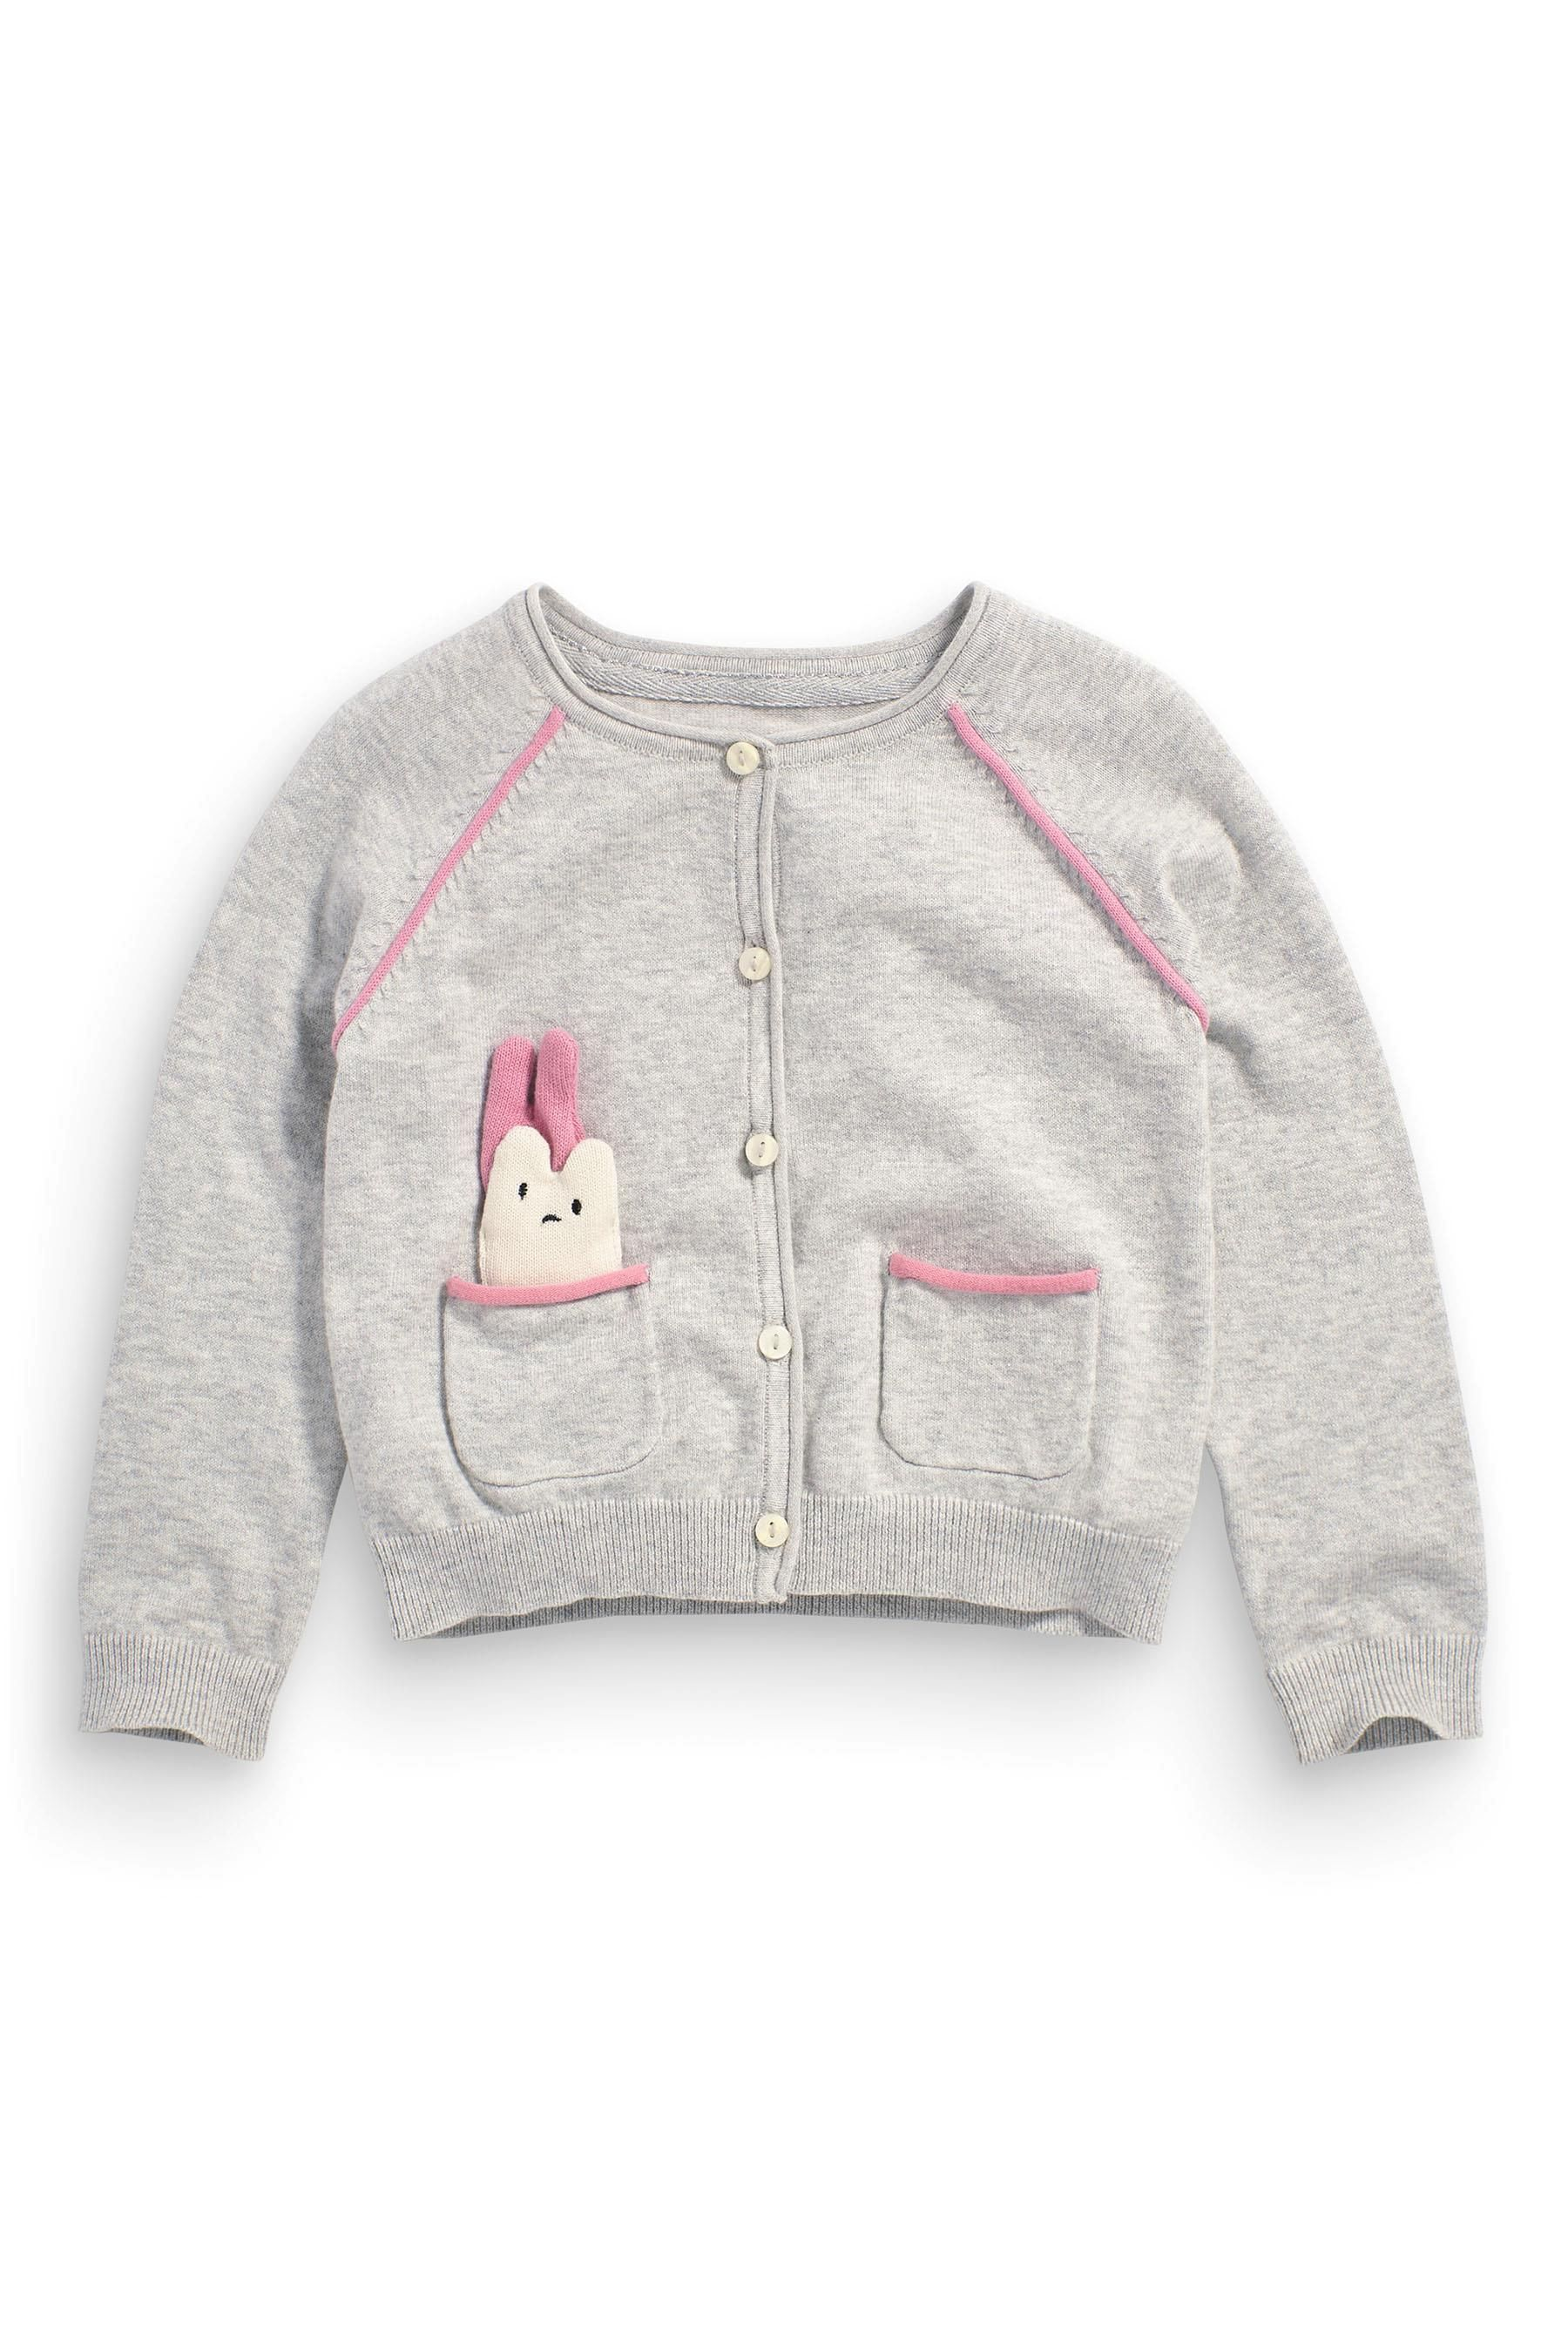 Buy Grey Patch Cardigan (3mths-6yrs) from the Next UK online shop ...